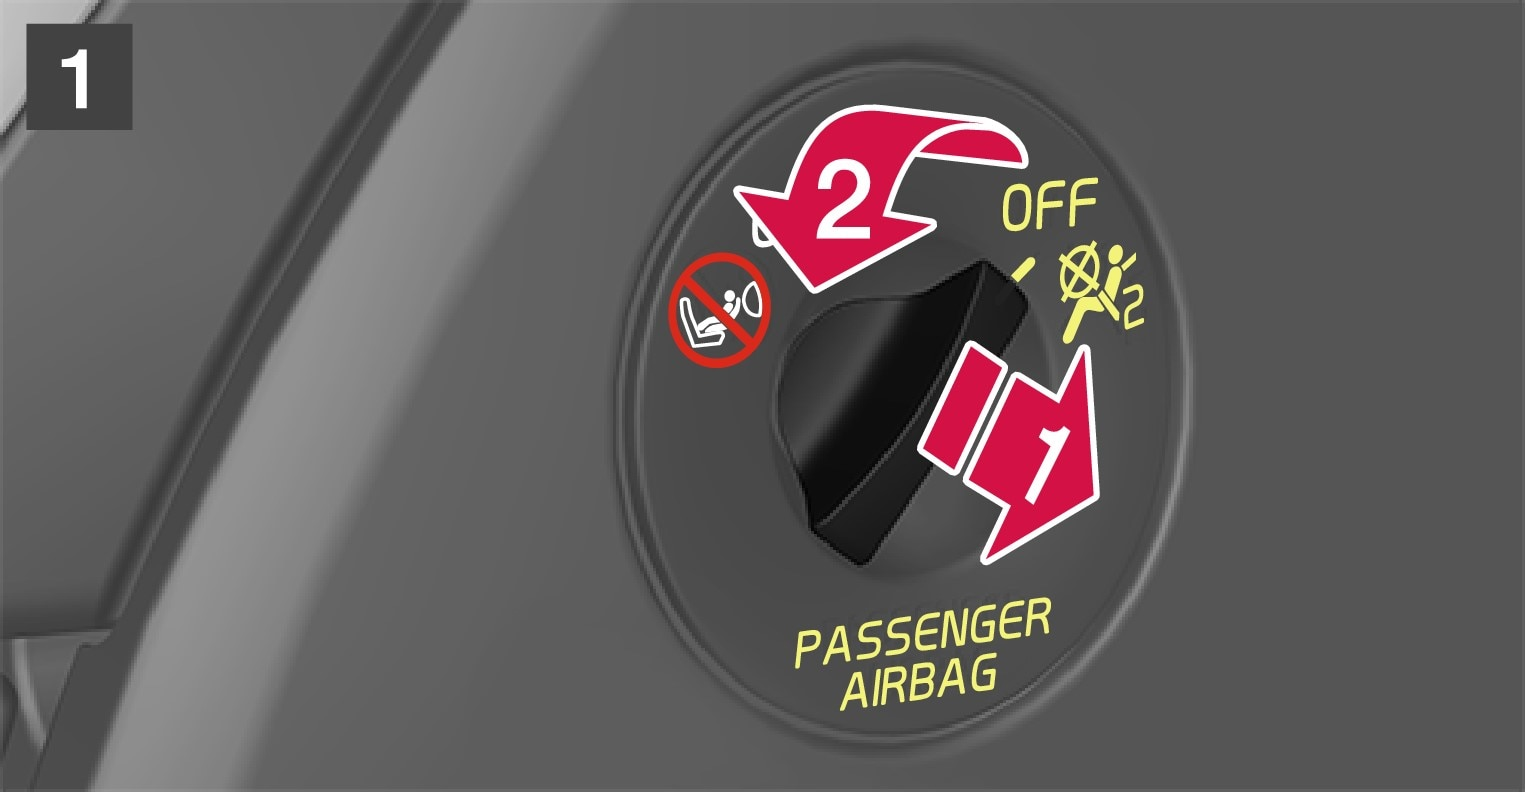 P5-1507–Safety–Passenger airbag cut off switch to on